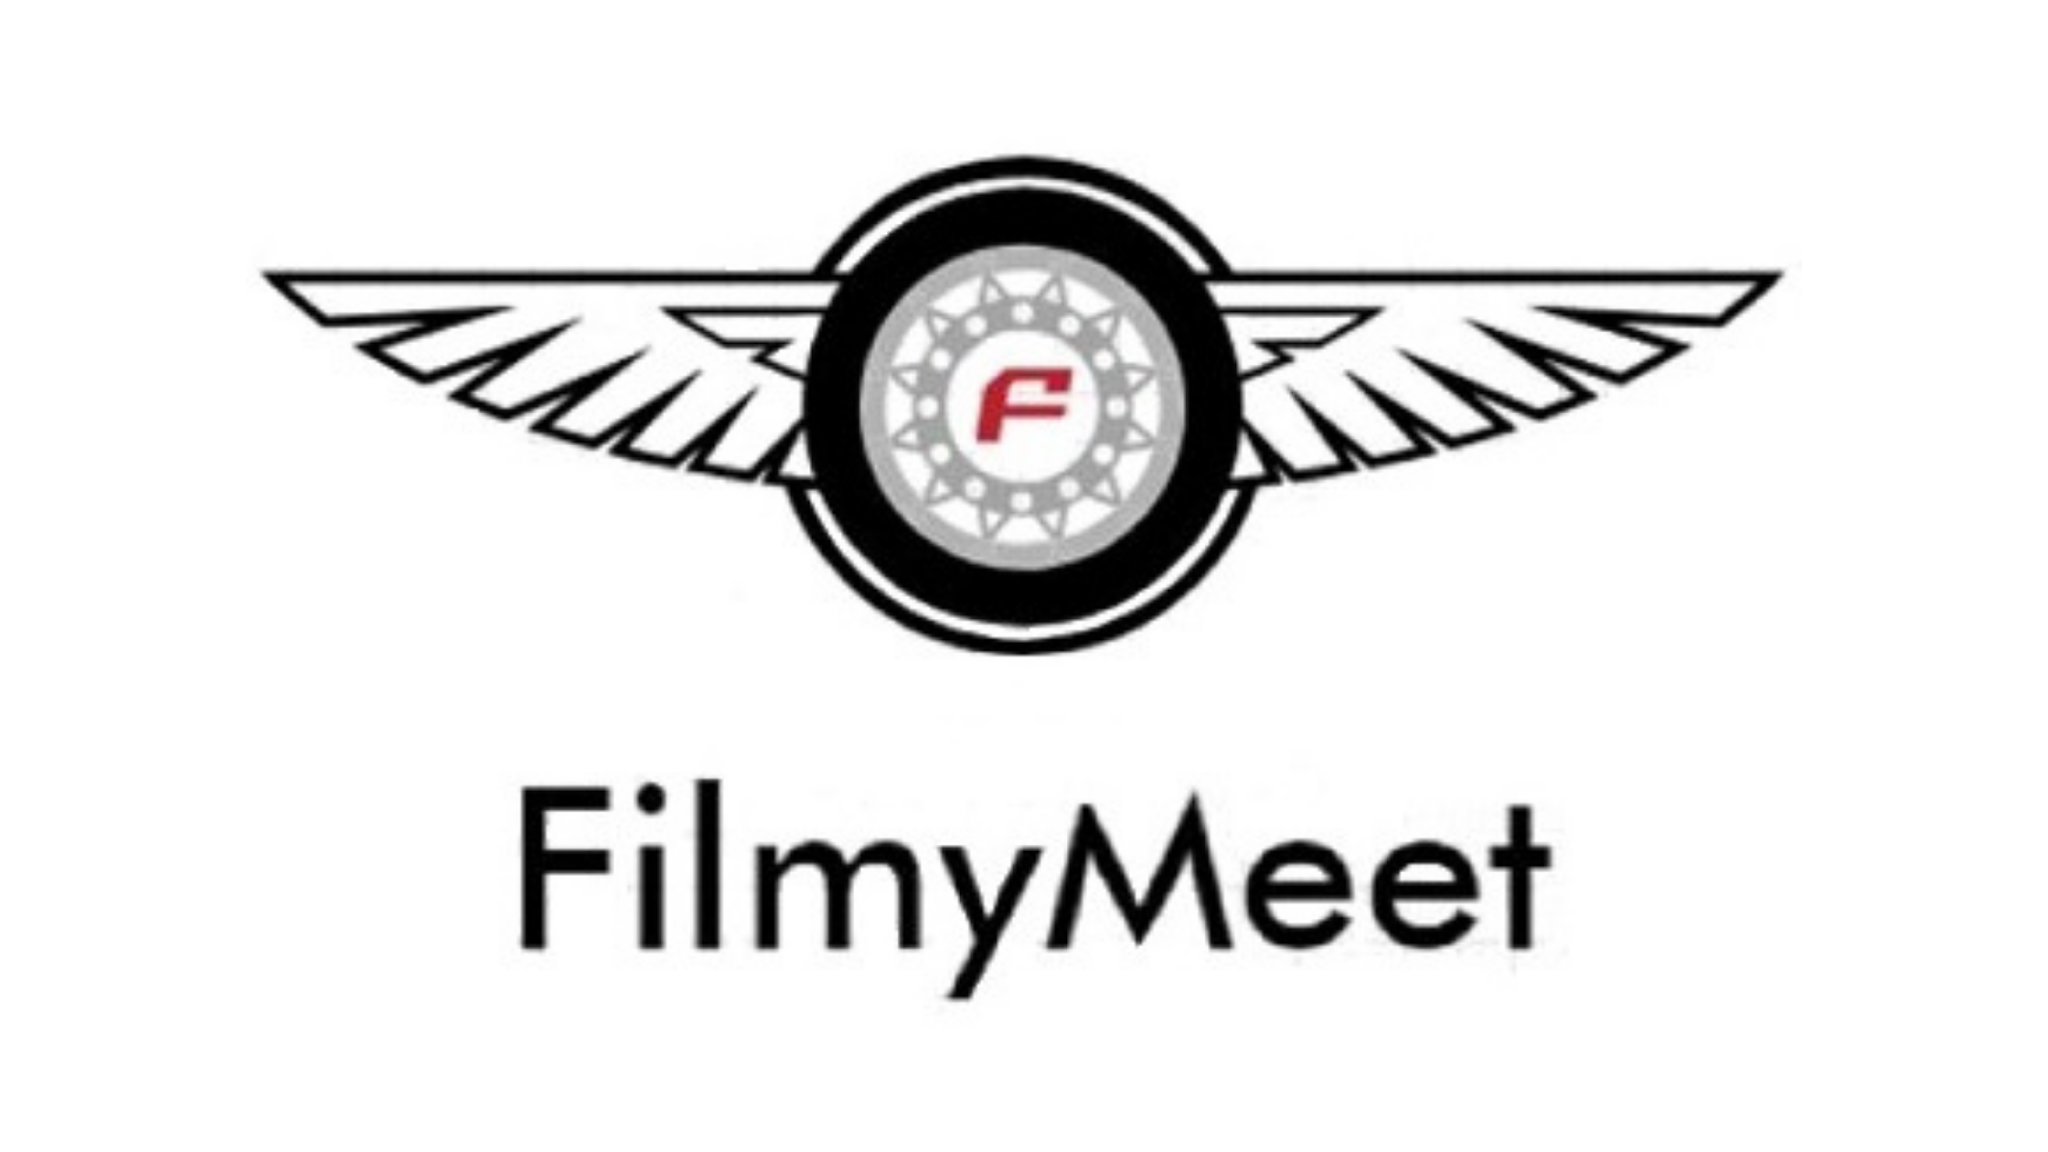 Filmymeet 2021:- Filmy Meet Piracy Website Live Link Download Download, South Movies Webseries, Read Latest News On Filmymeets